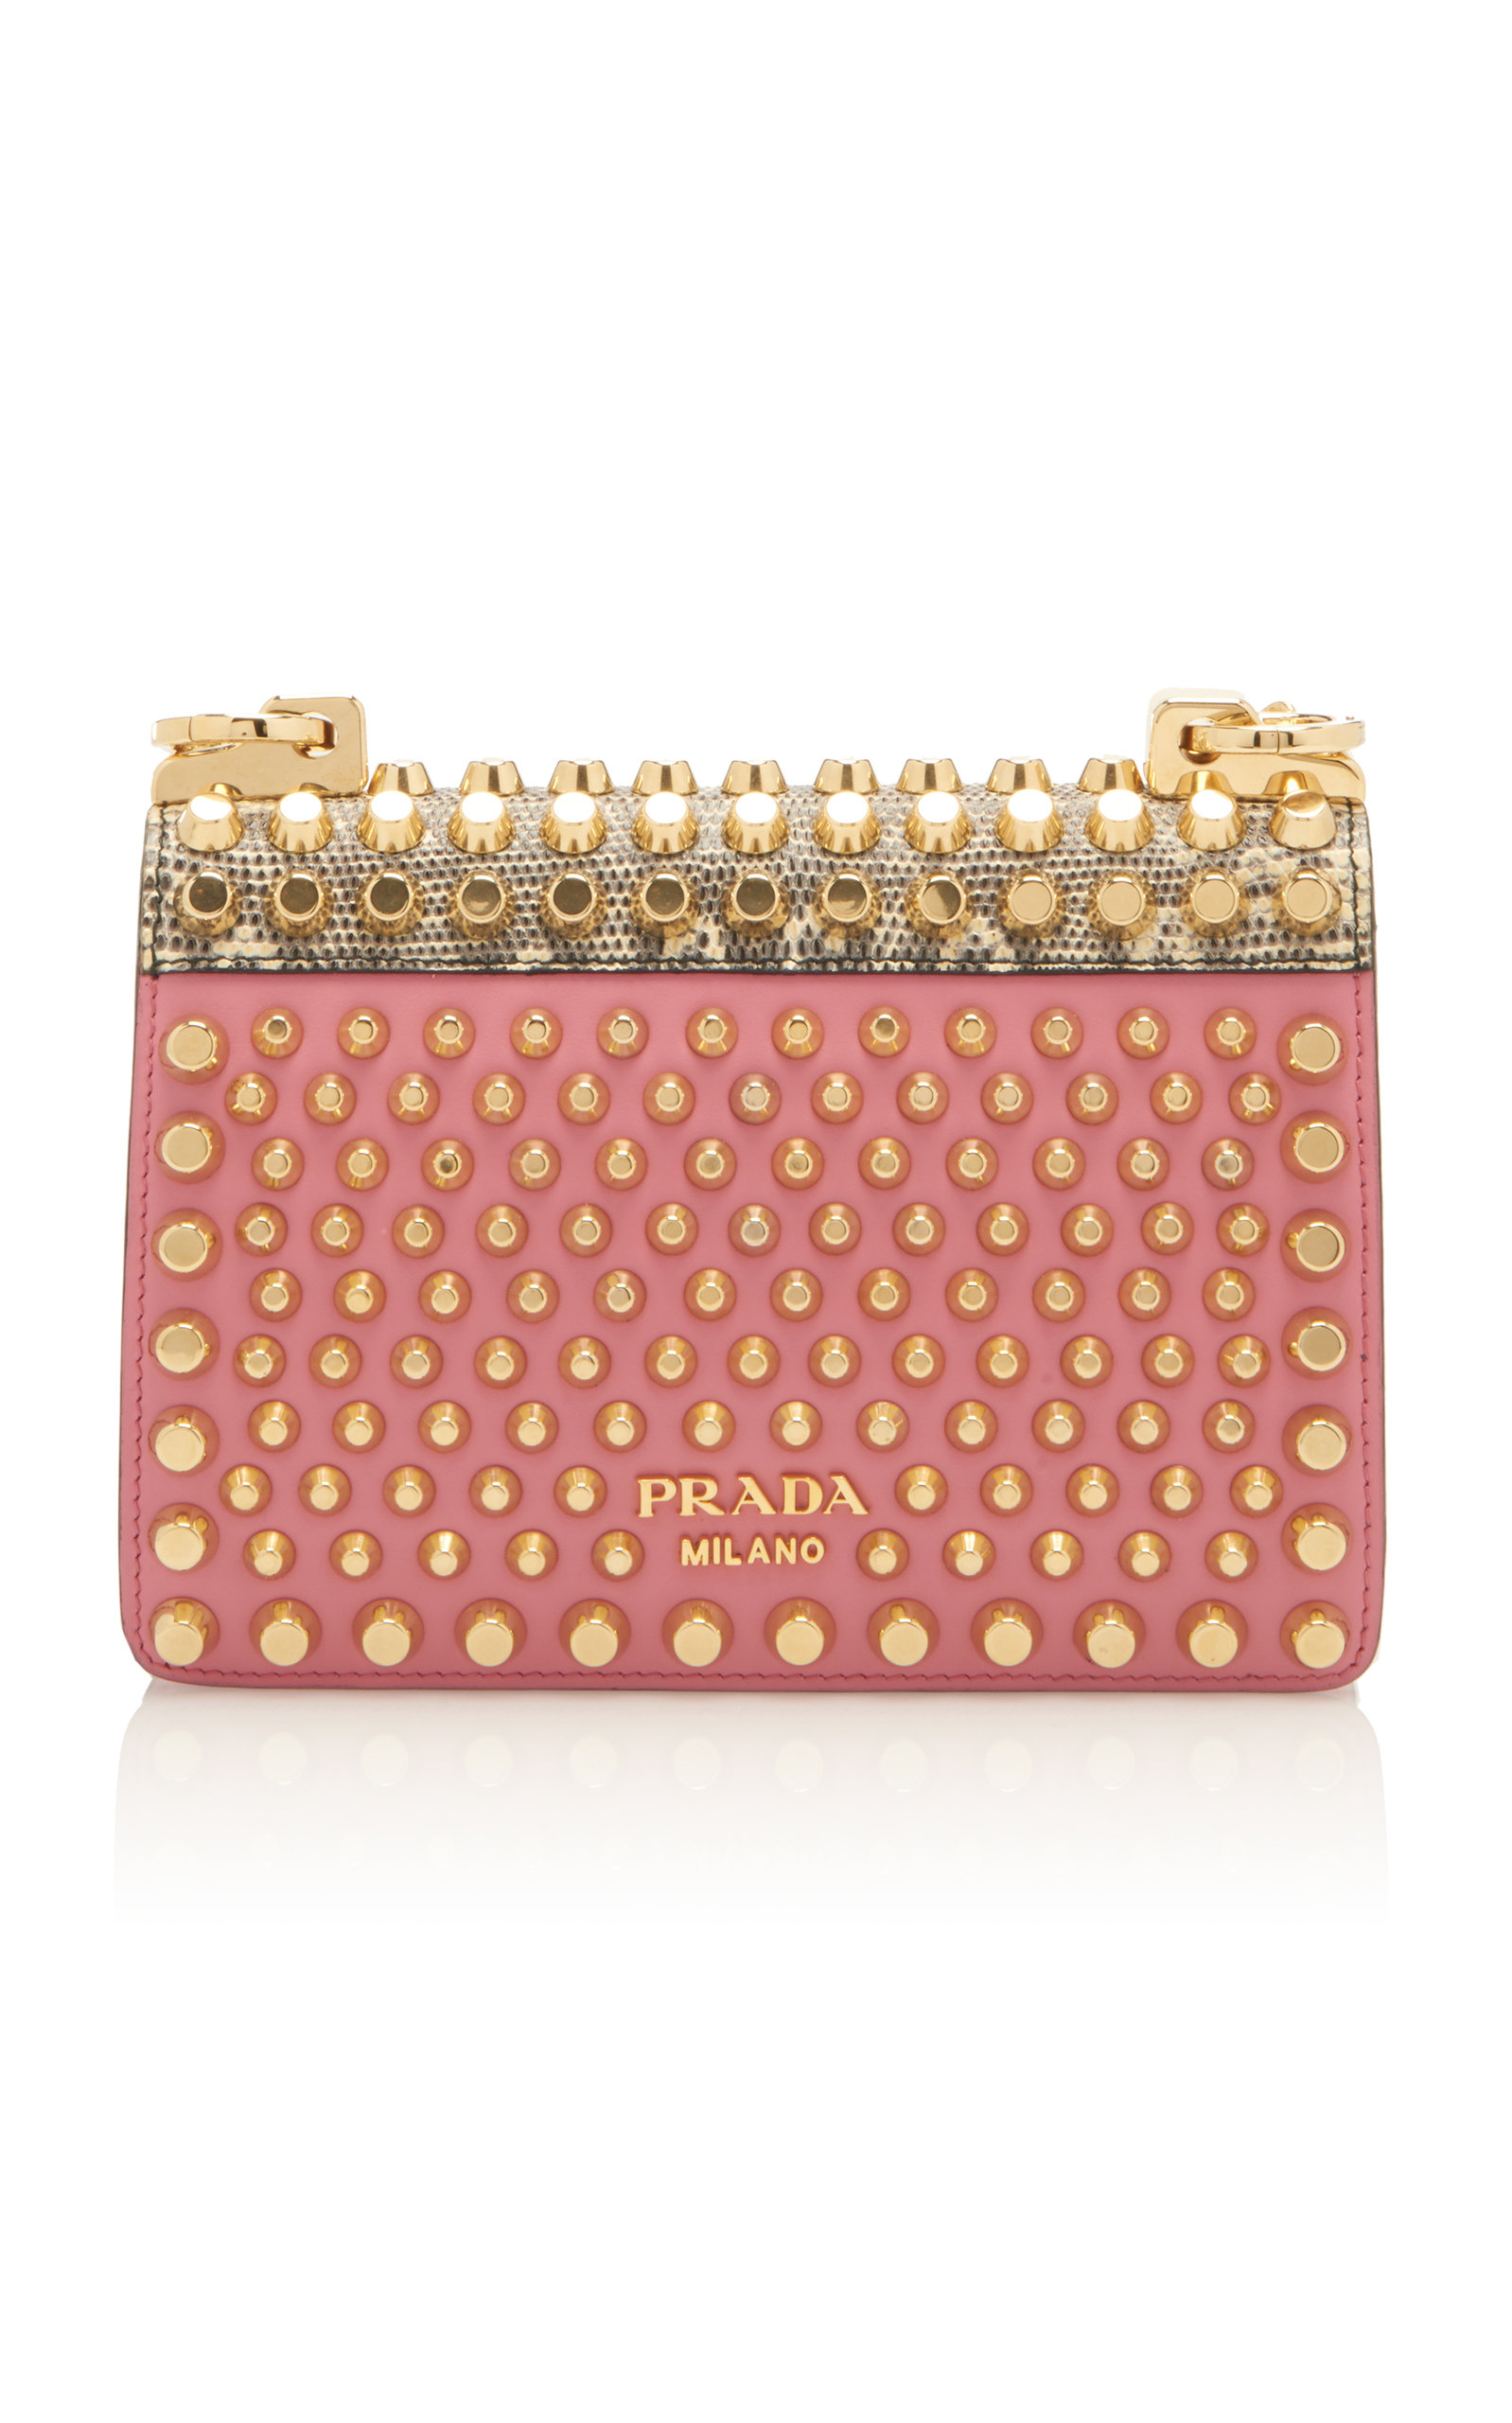 61f8128d2235 PradaStudded Lizard-Trimmed Leather Shoulder Bag. CLOSE. Loading. Loading.  Loading. Loading